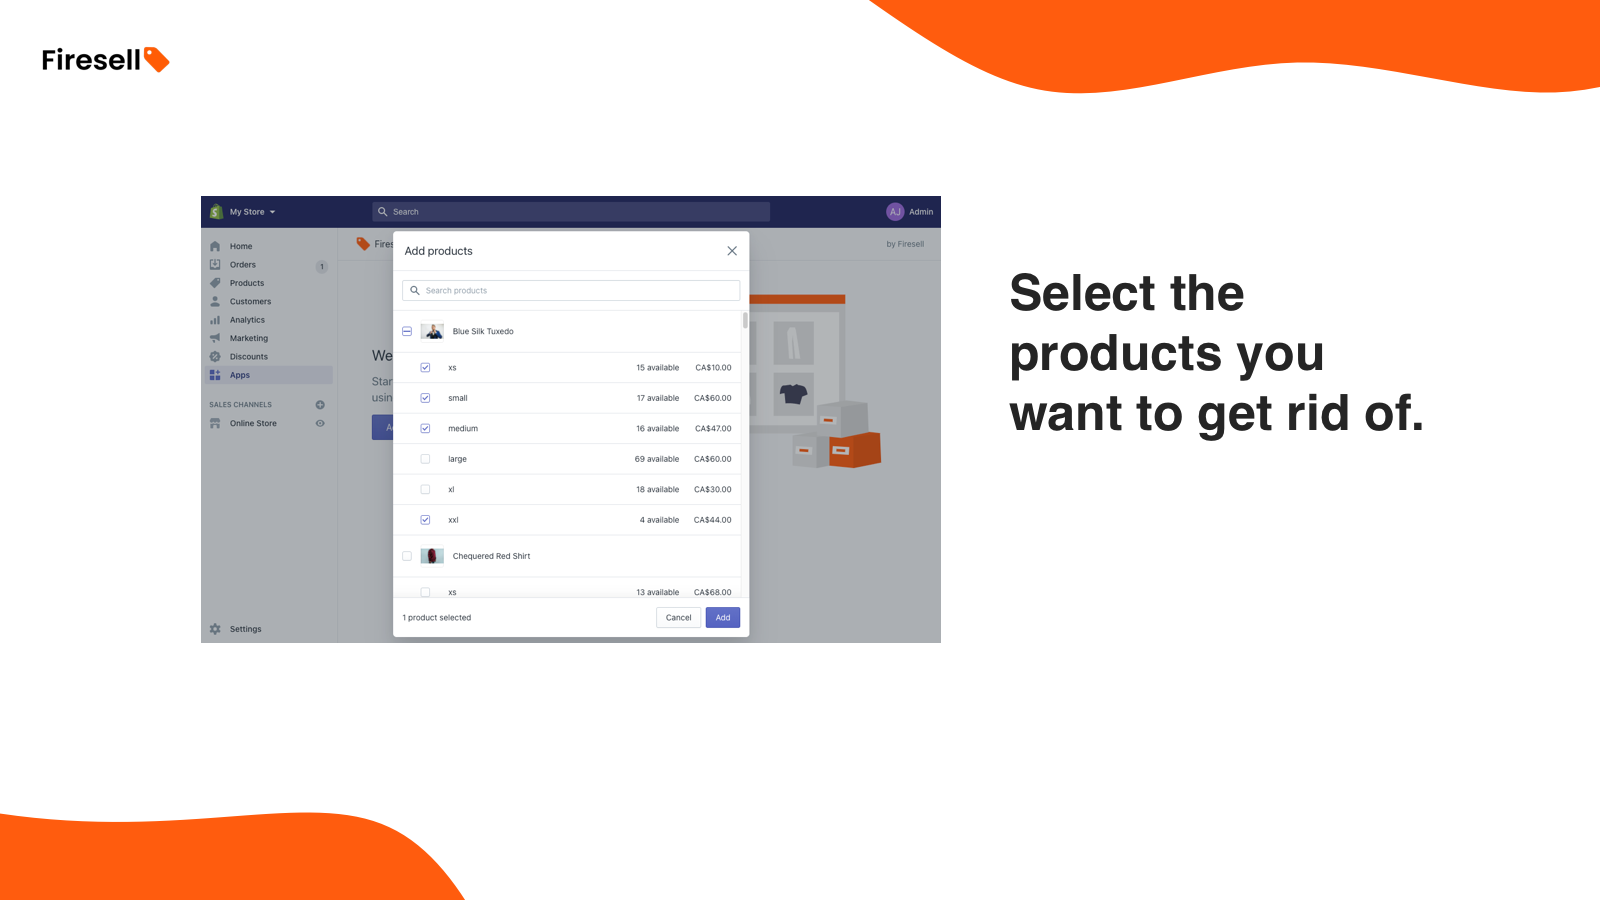 Select the products you want to get rid of